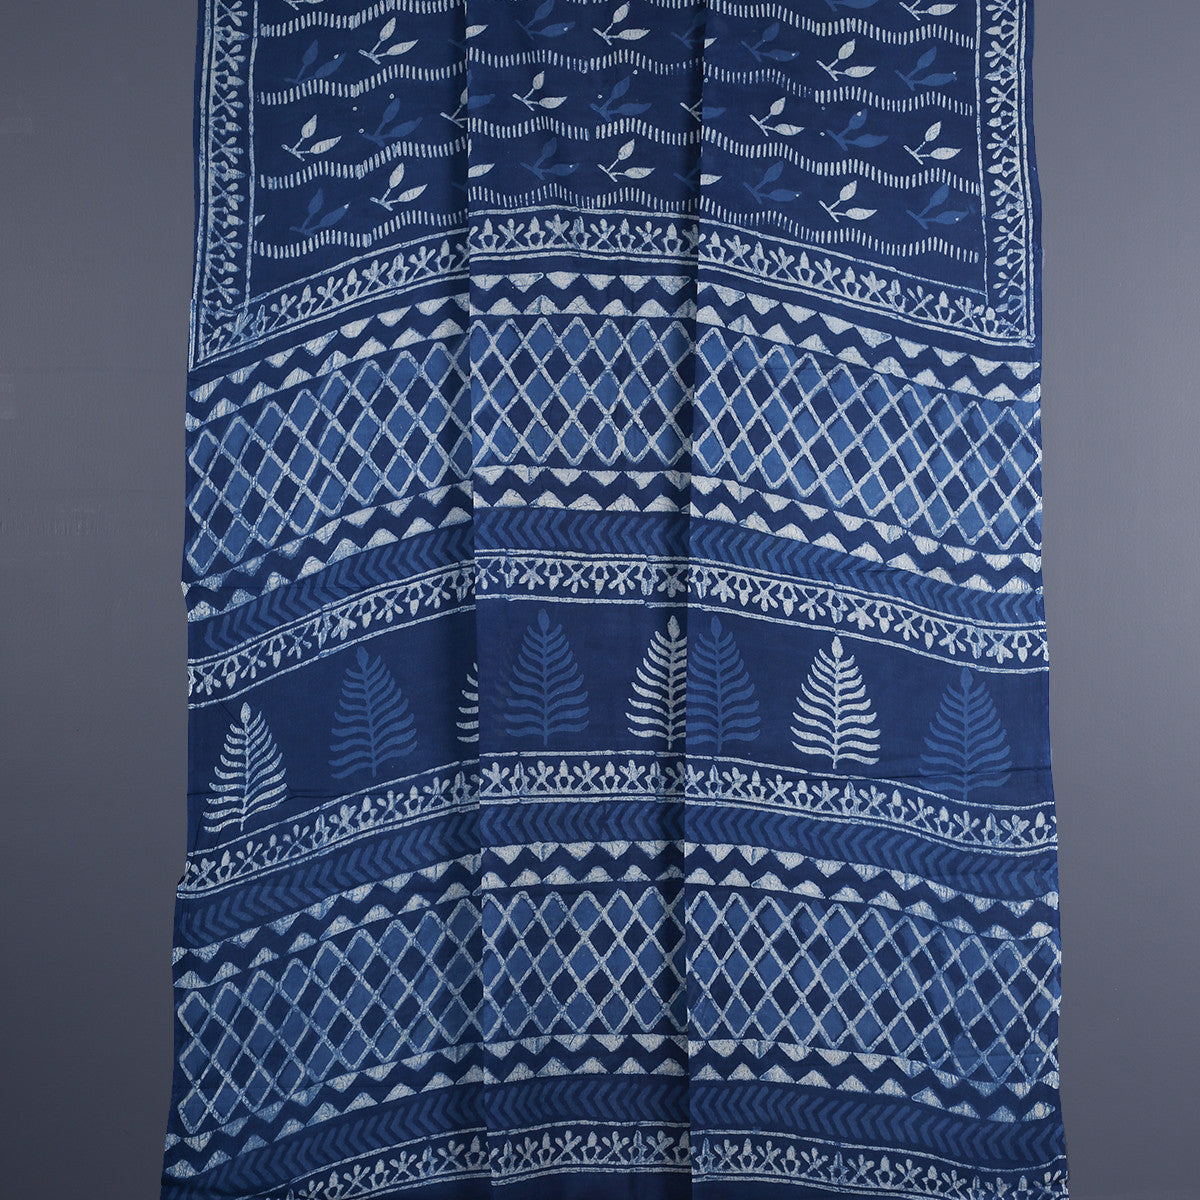 Dabu Hand Block Printed Indigo Cotton Saree with Blouse 14